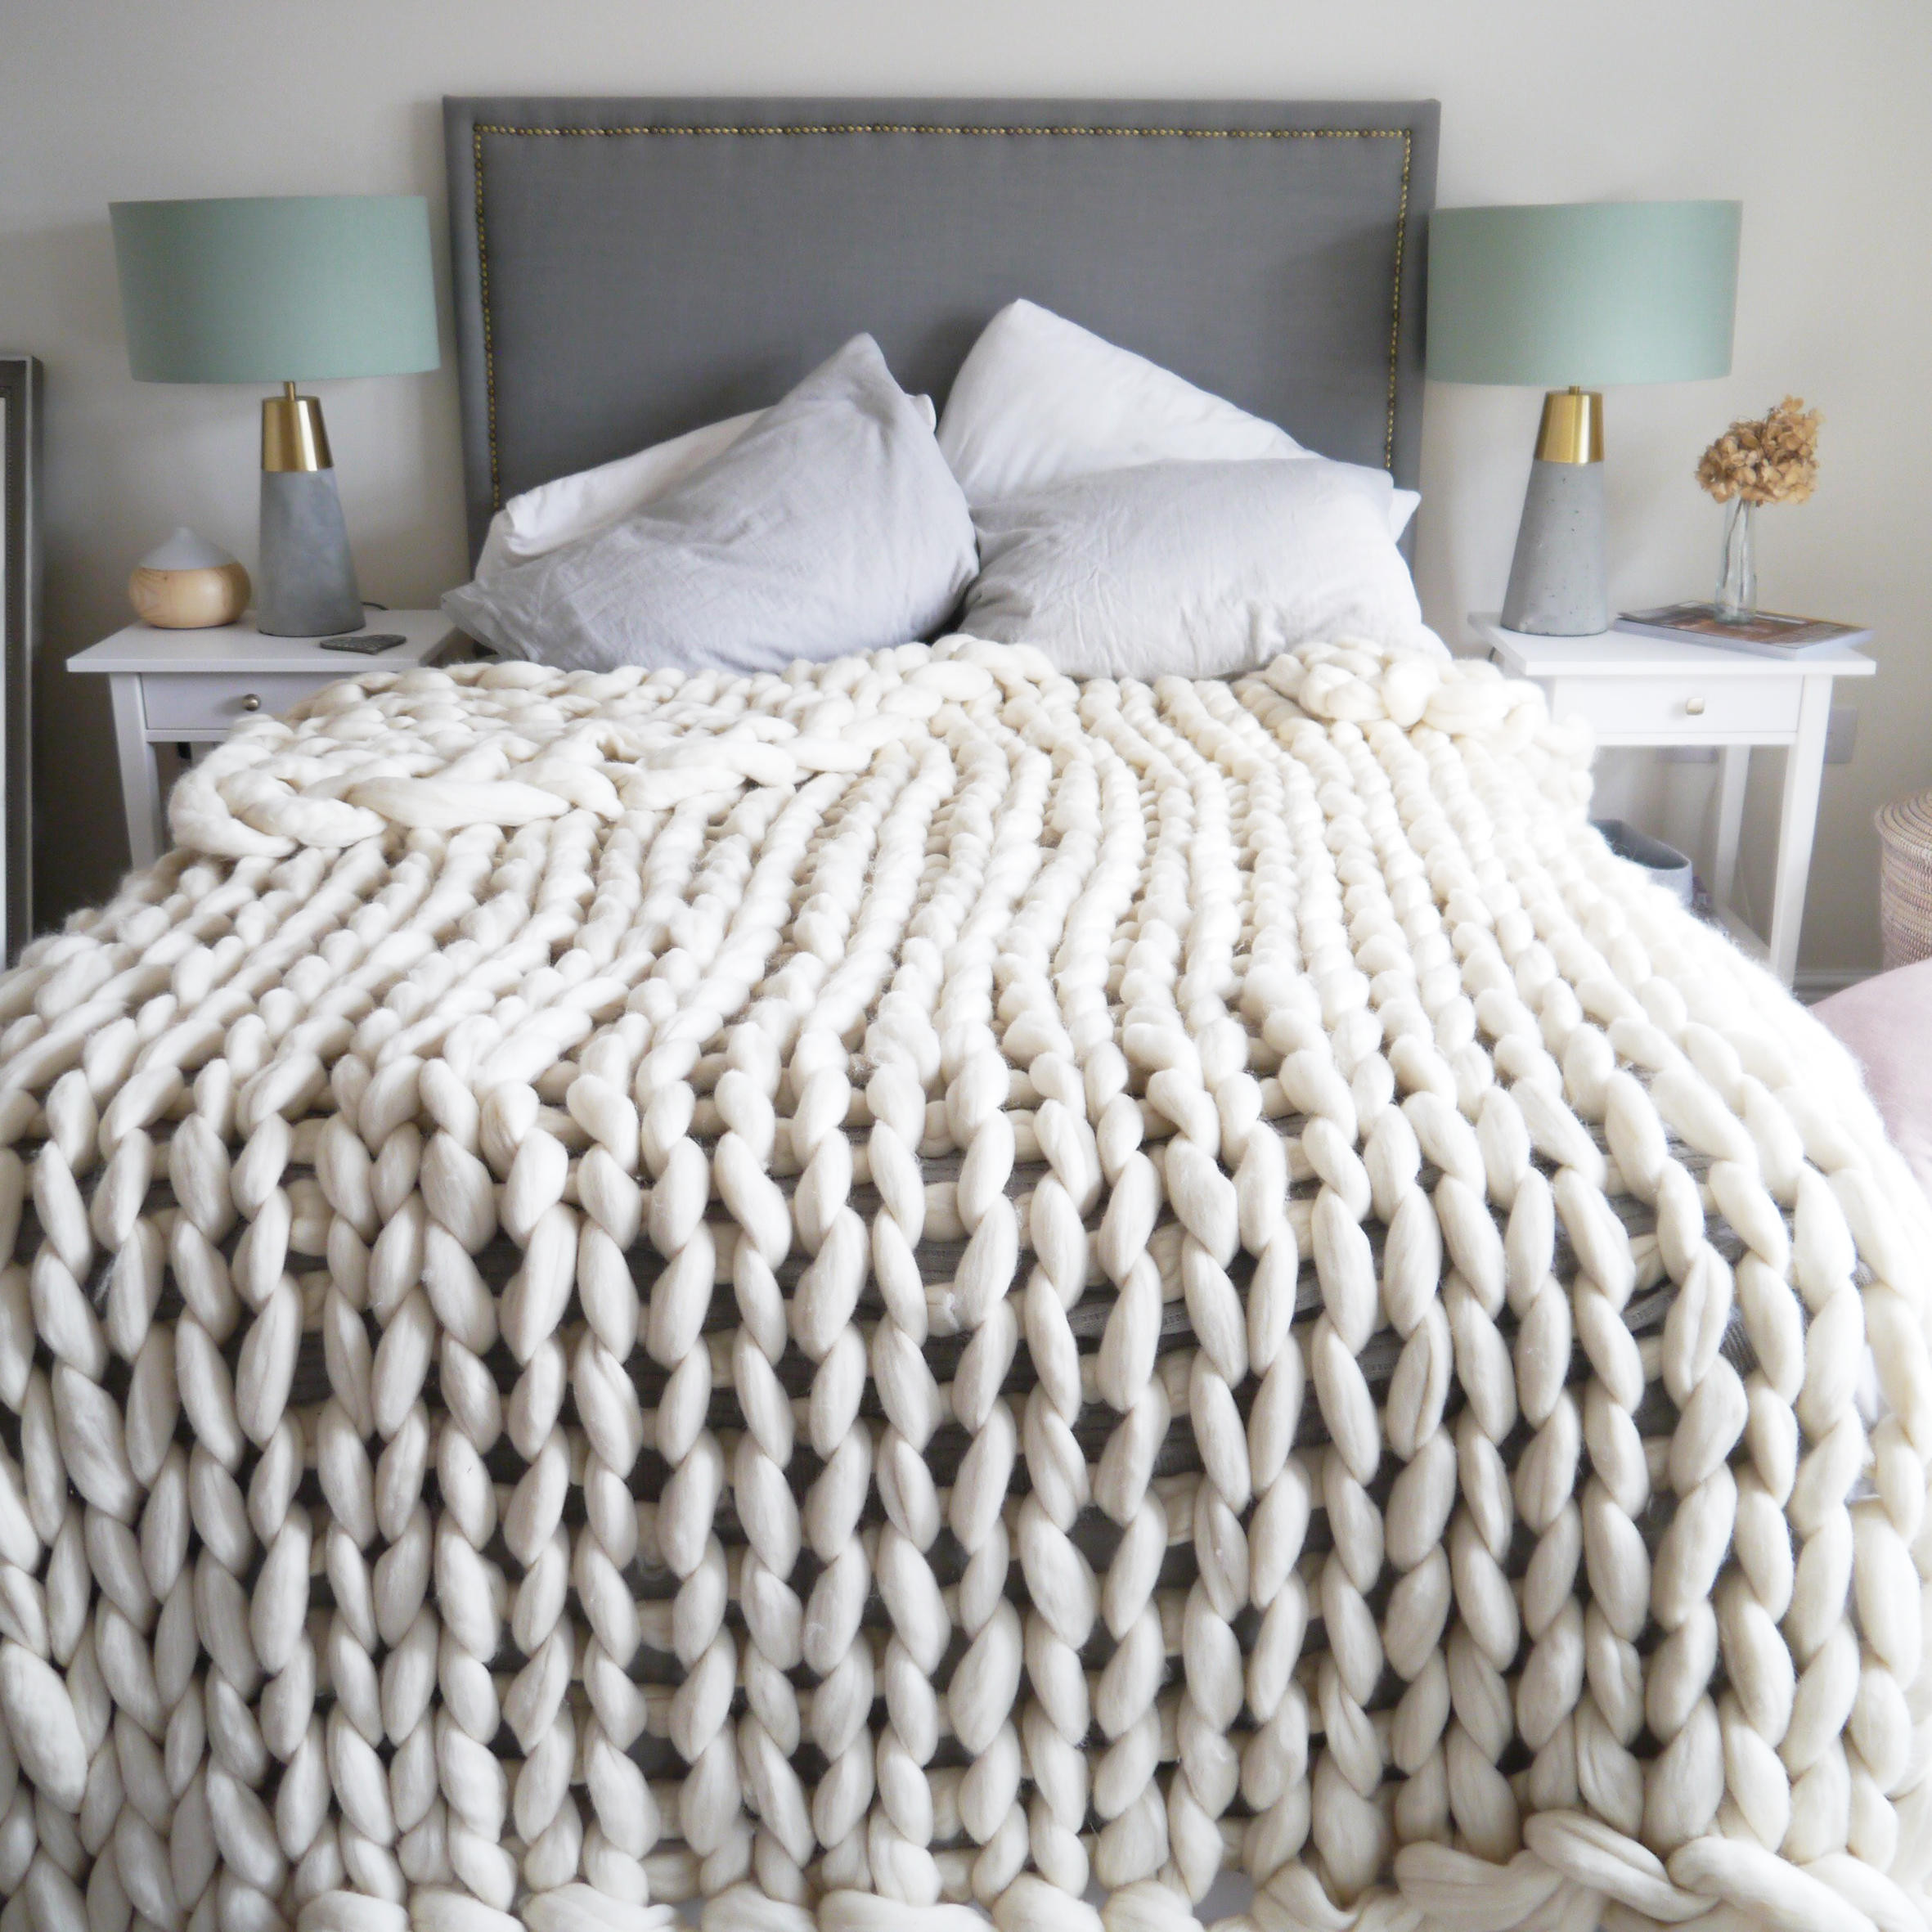 Chunky Knit Throw Inspirational White Chunky Knit Blanket Chunky Knit Throw White Knit Of Superb 50 Pics Chunky Knit Throw